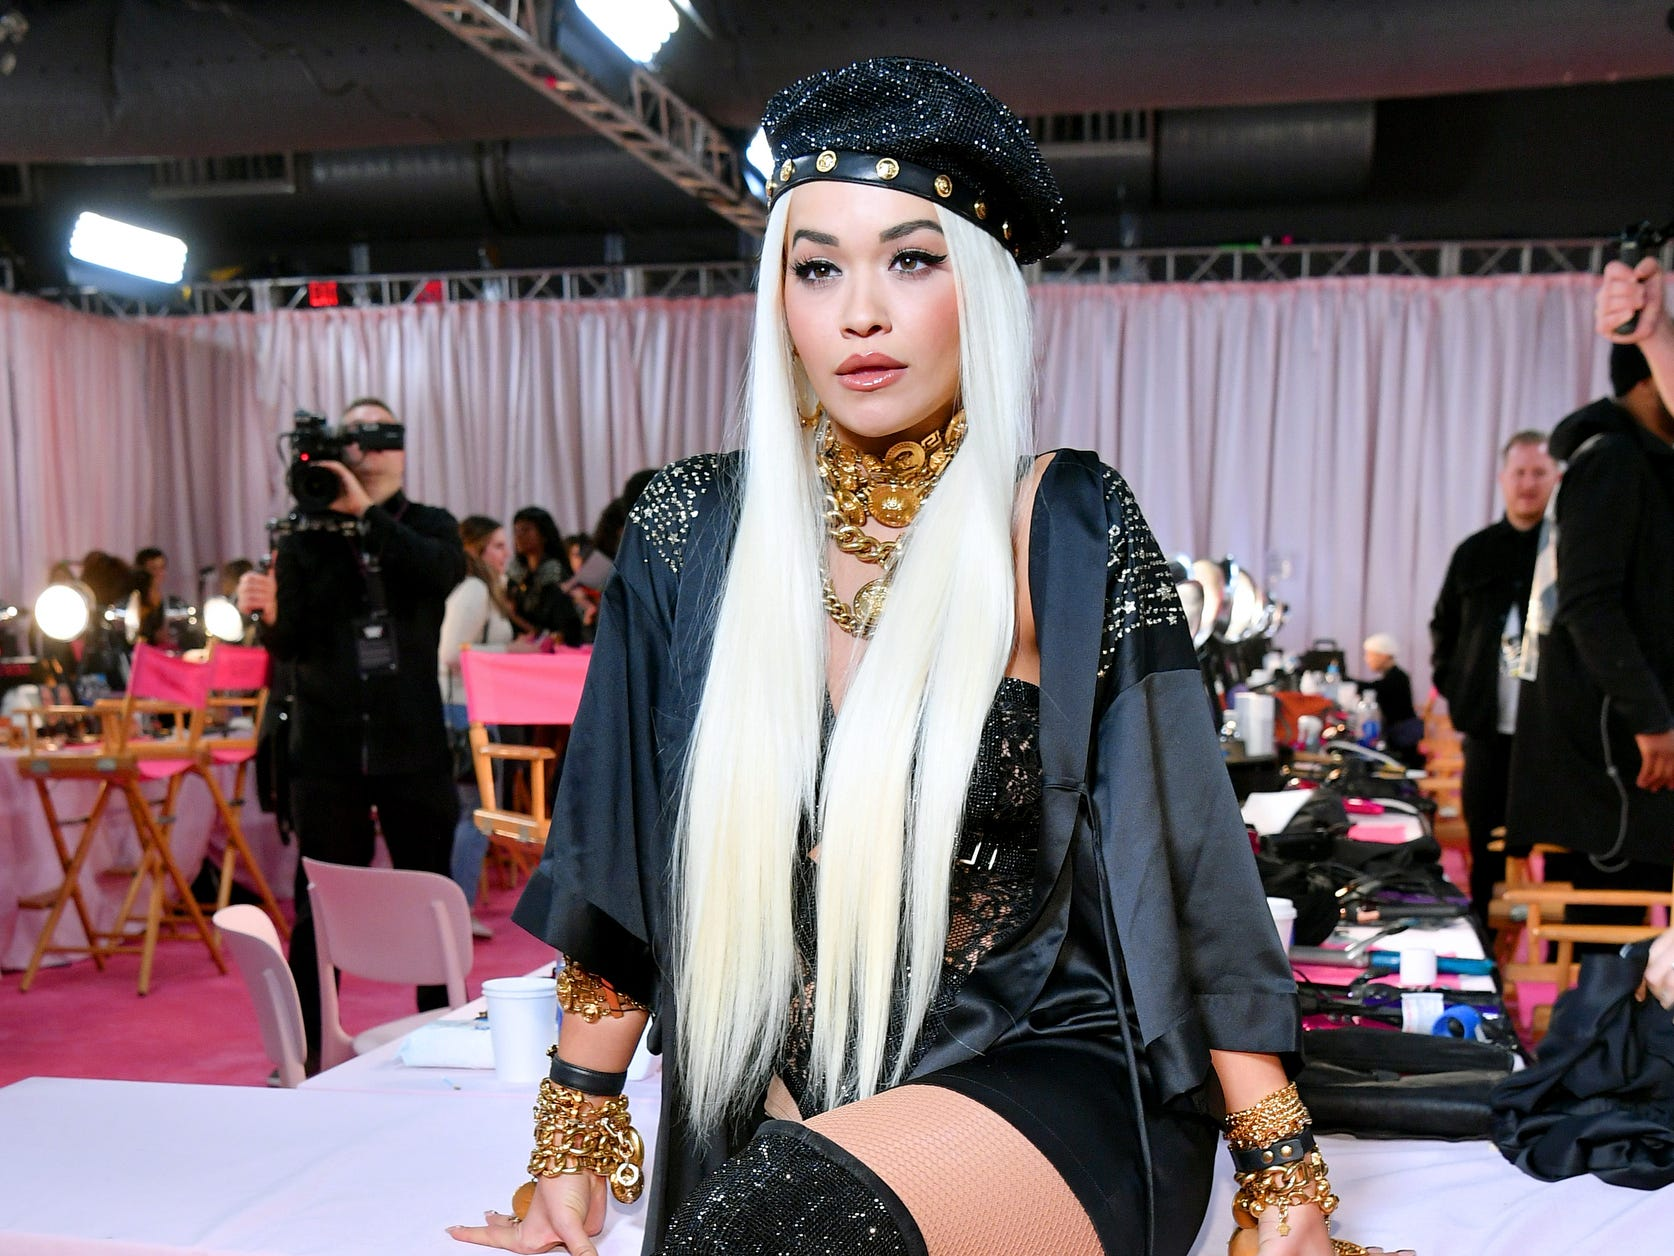 Rita Ora strikes a pose backstage during  Victoria's Secret Fashion Show.